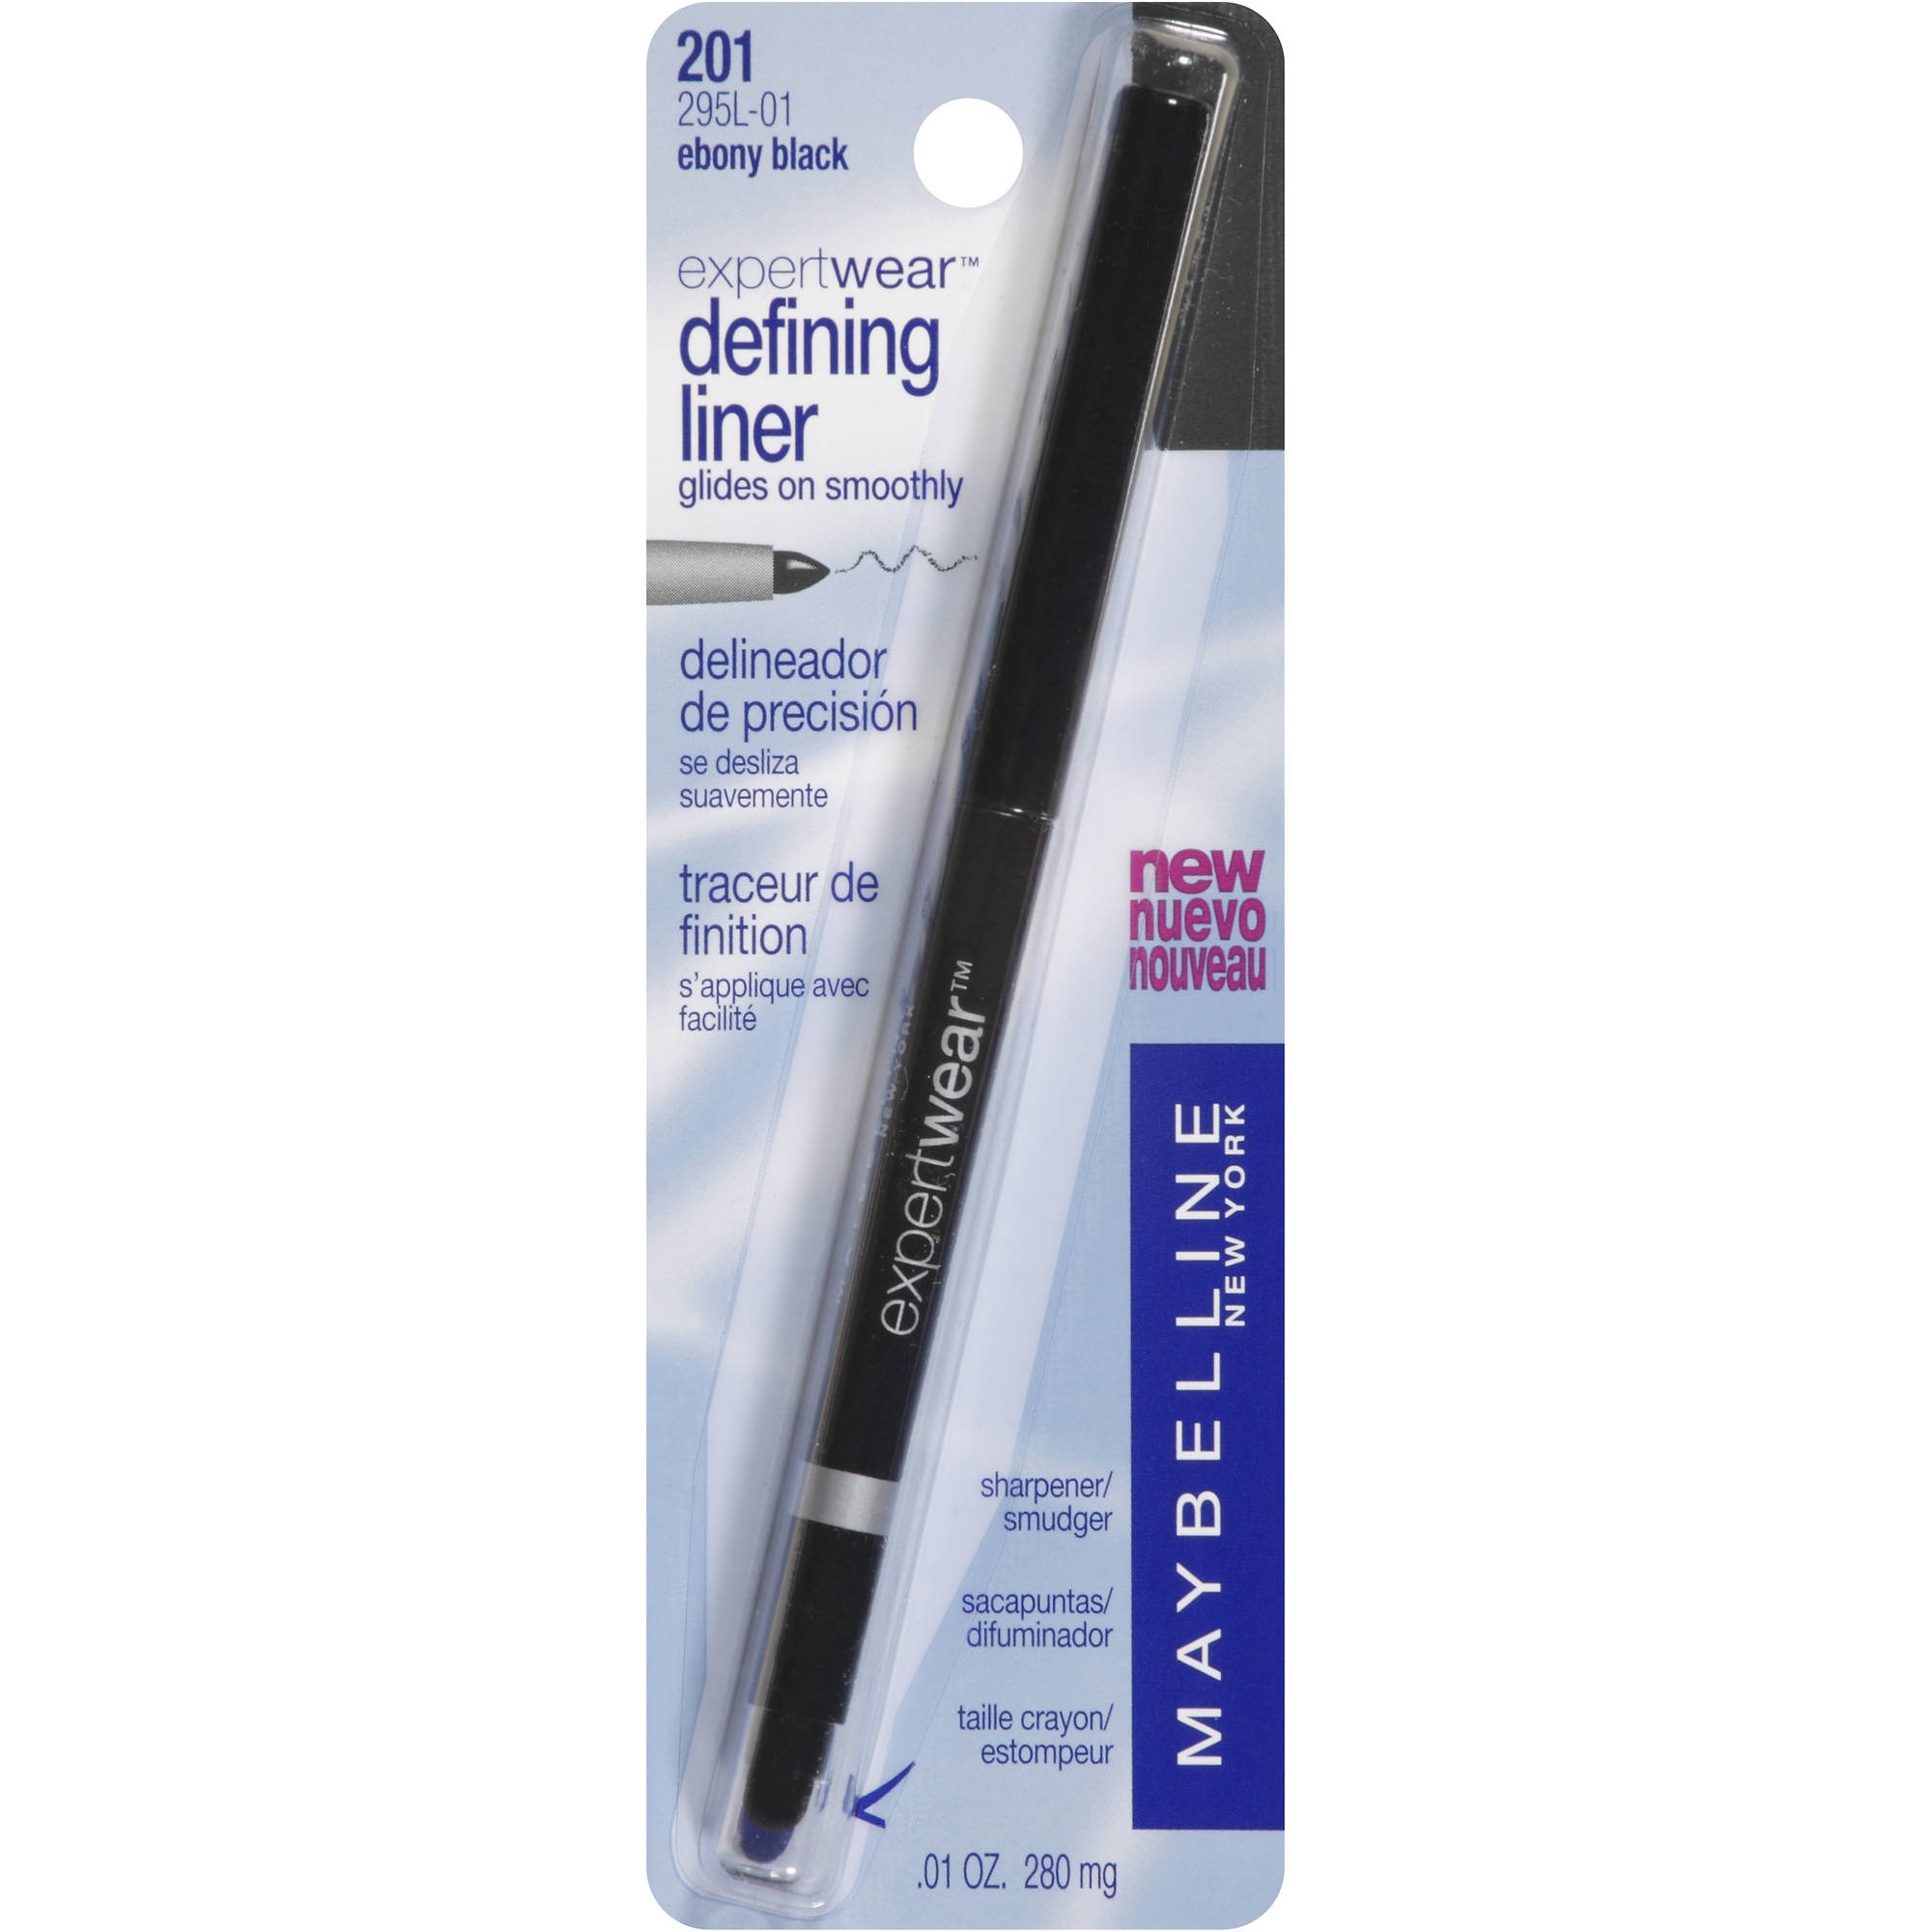 Maybelline Expert Wear Defining Liner, 201 Ebony Black, 0.01 oz